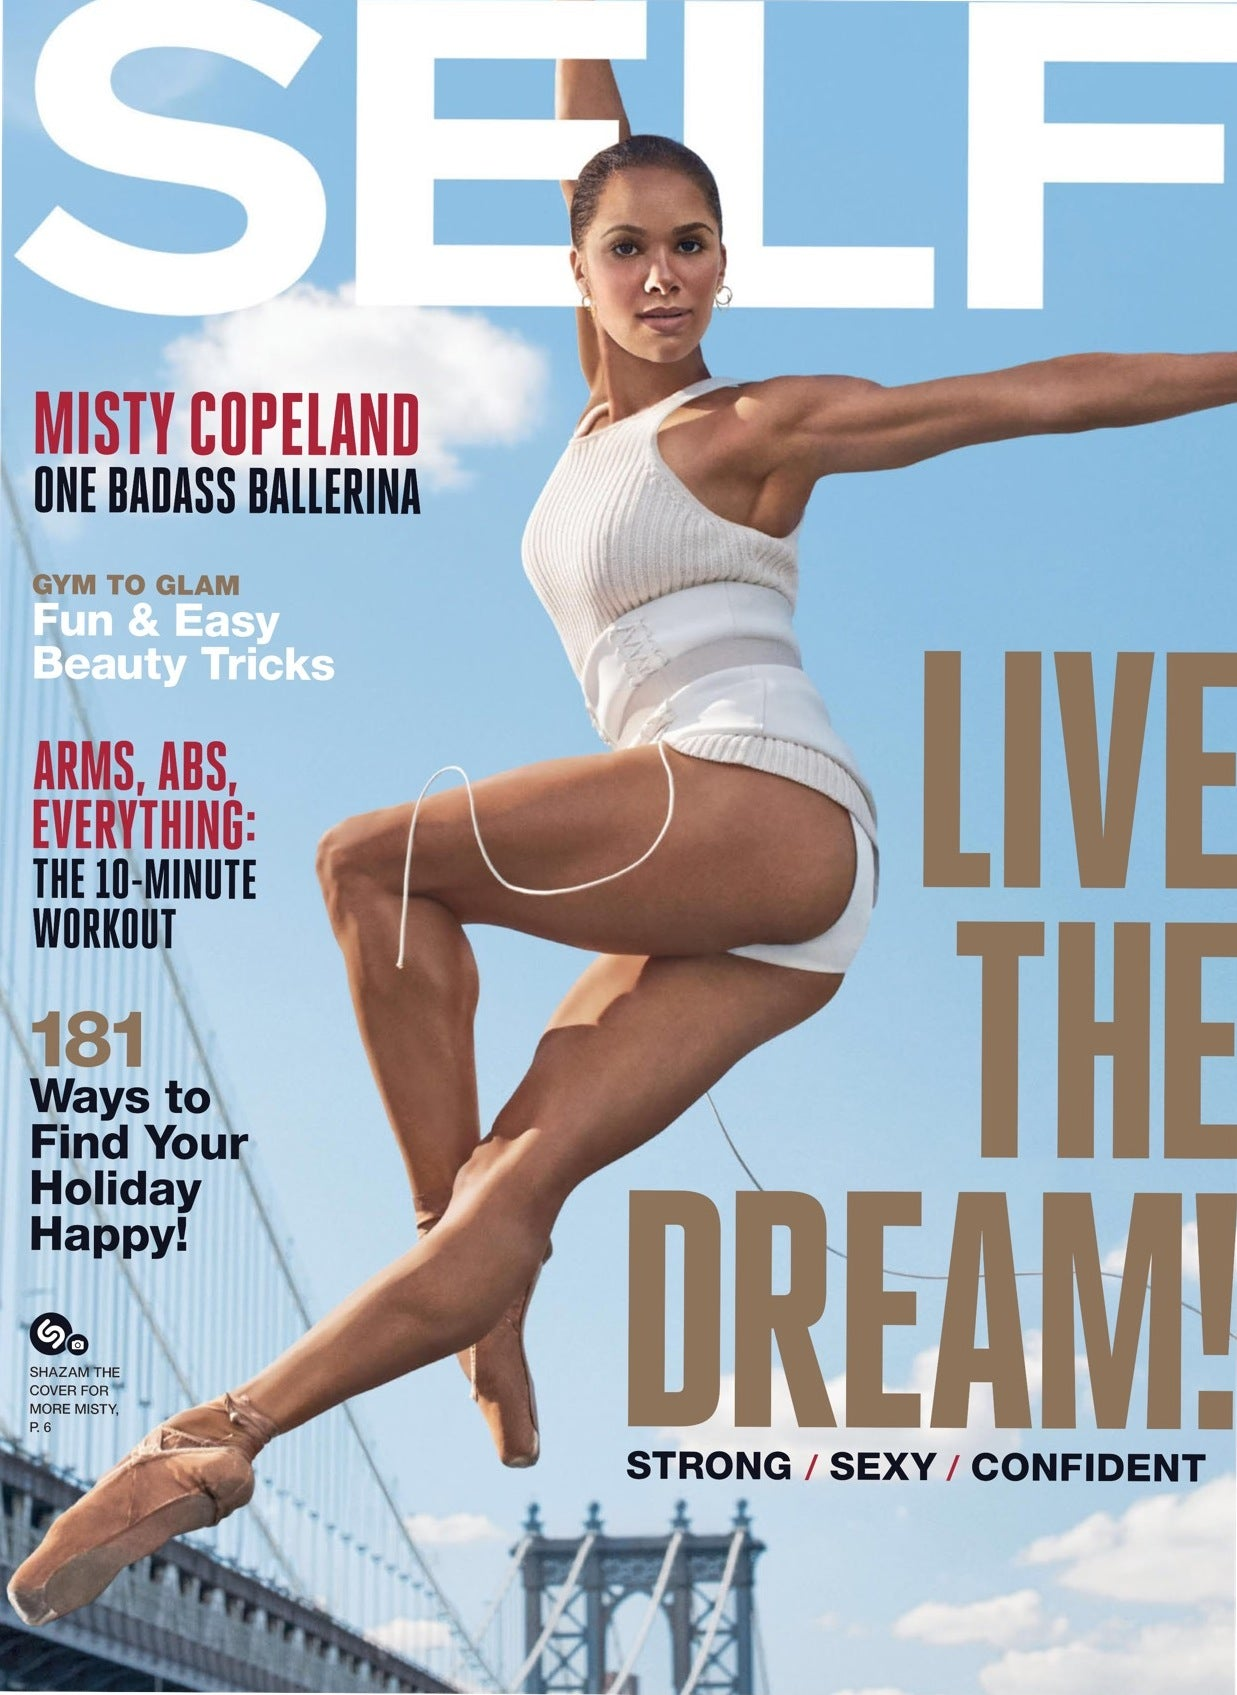 Misty Copeland in Lady Grey Jewelry Earrings